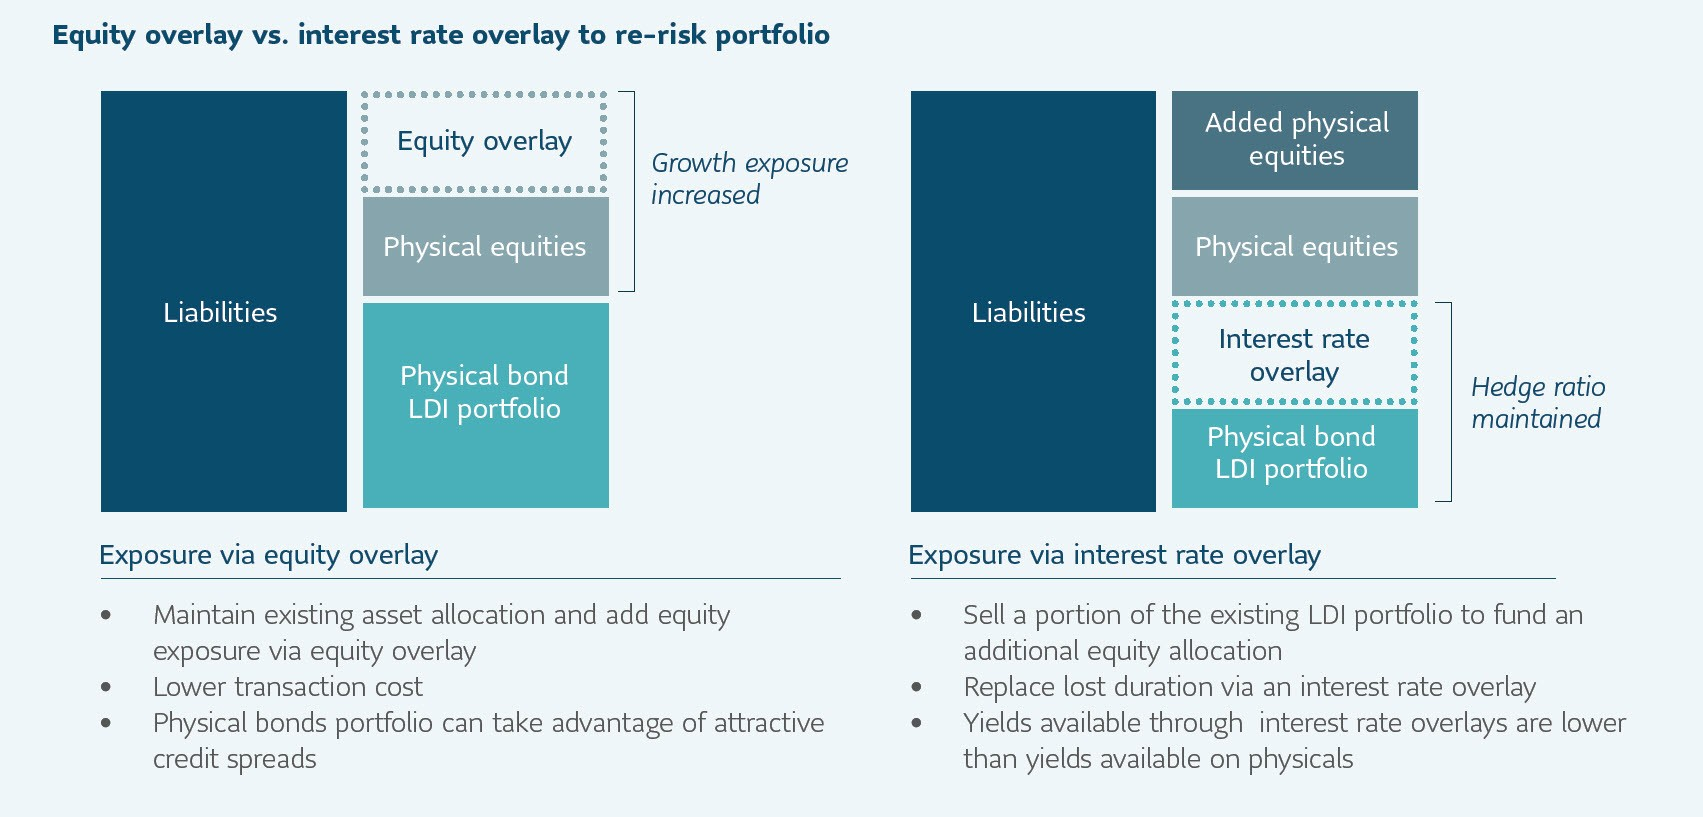 Equity overlay vs. interest rate overlay to re-risk portfolio